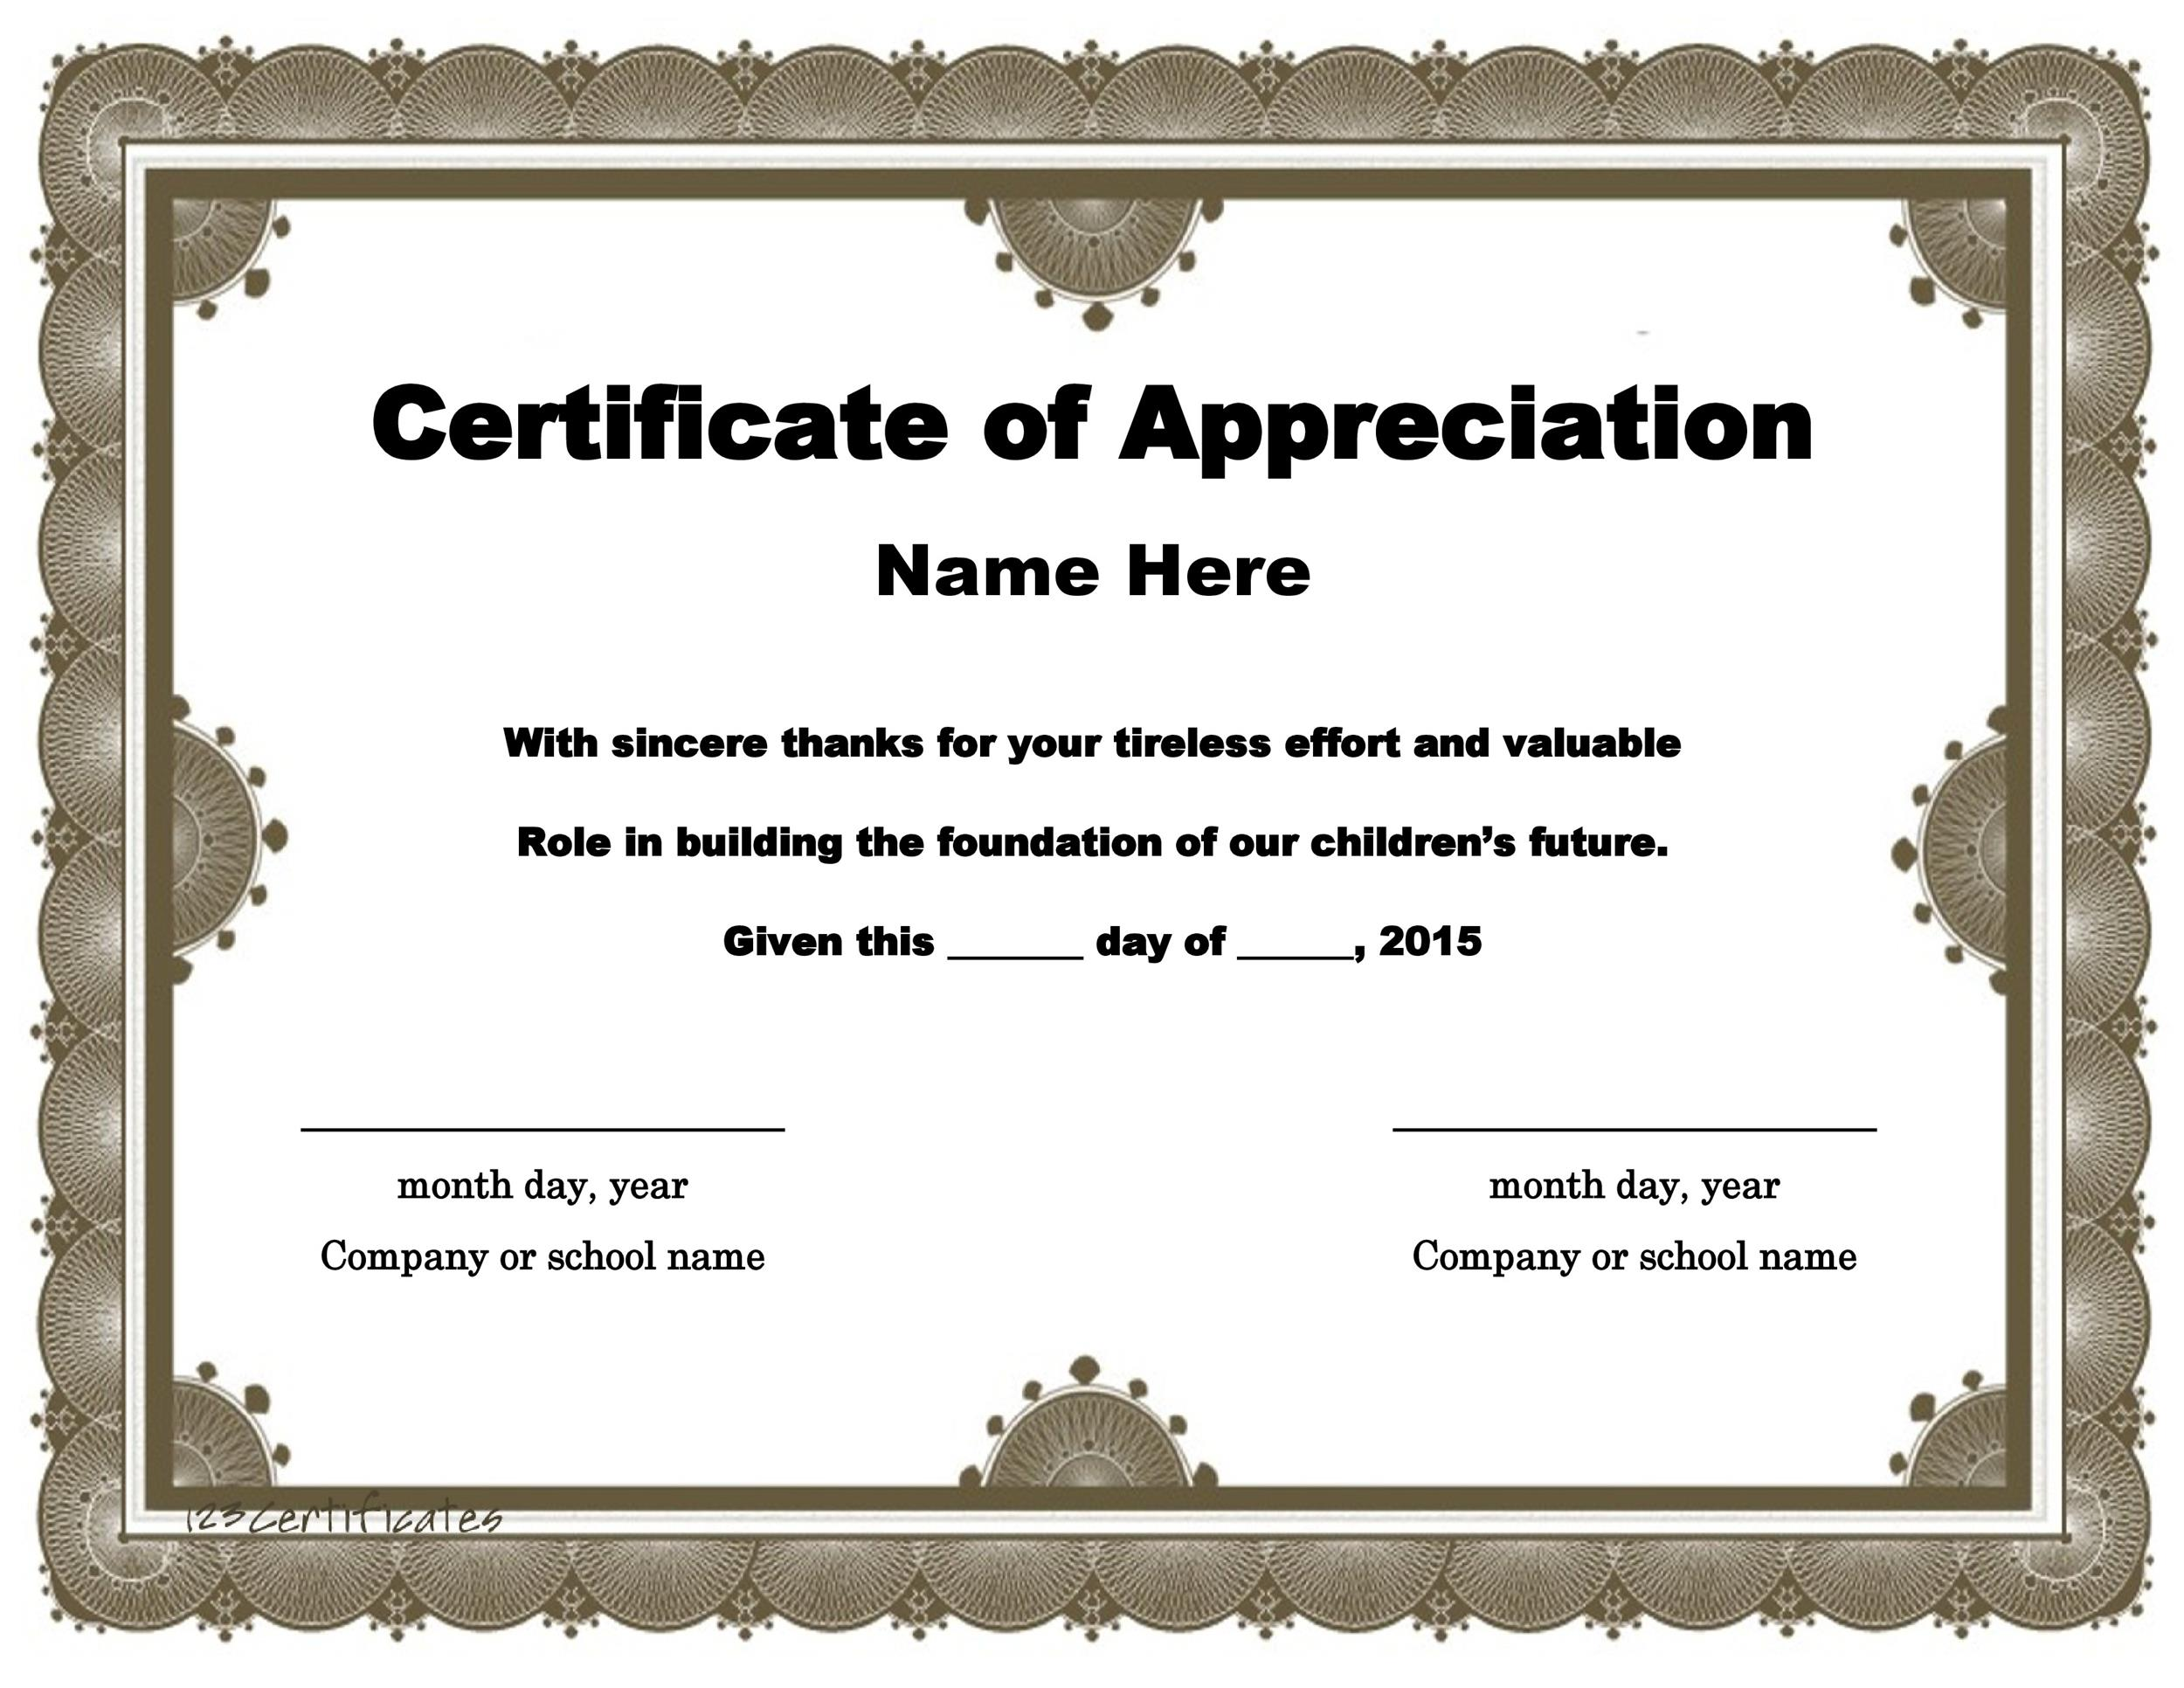 samples certificates of appreciation